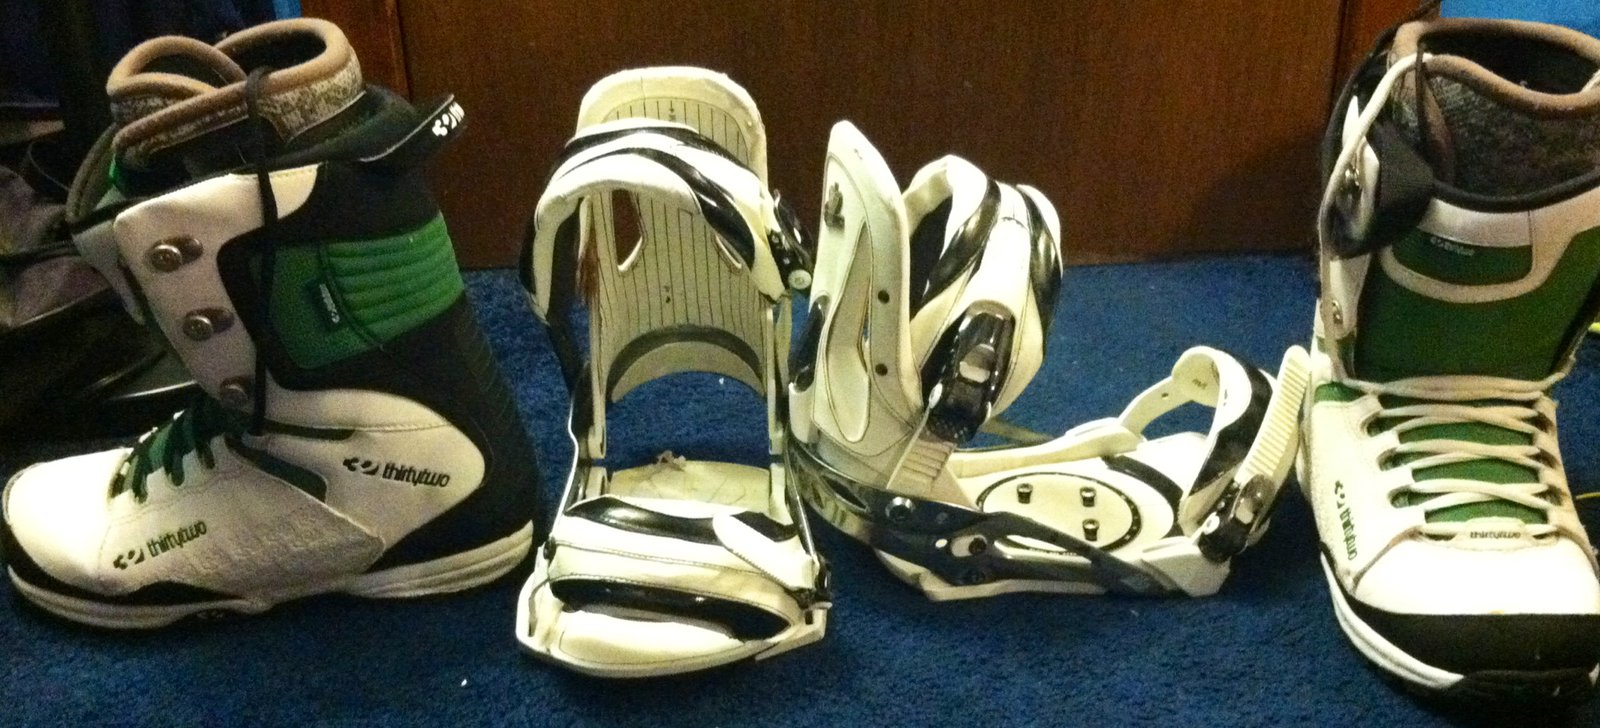 Boots and Bindings 1